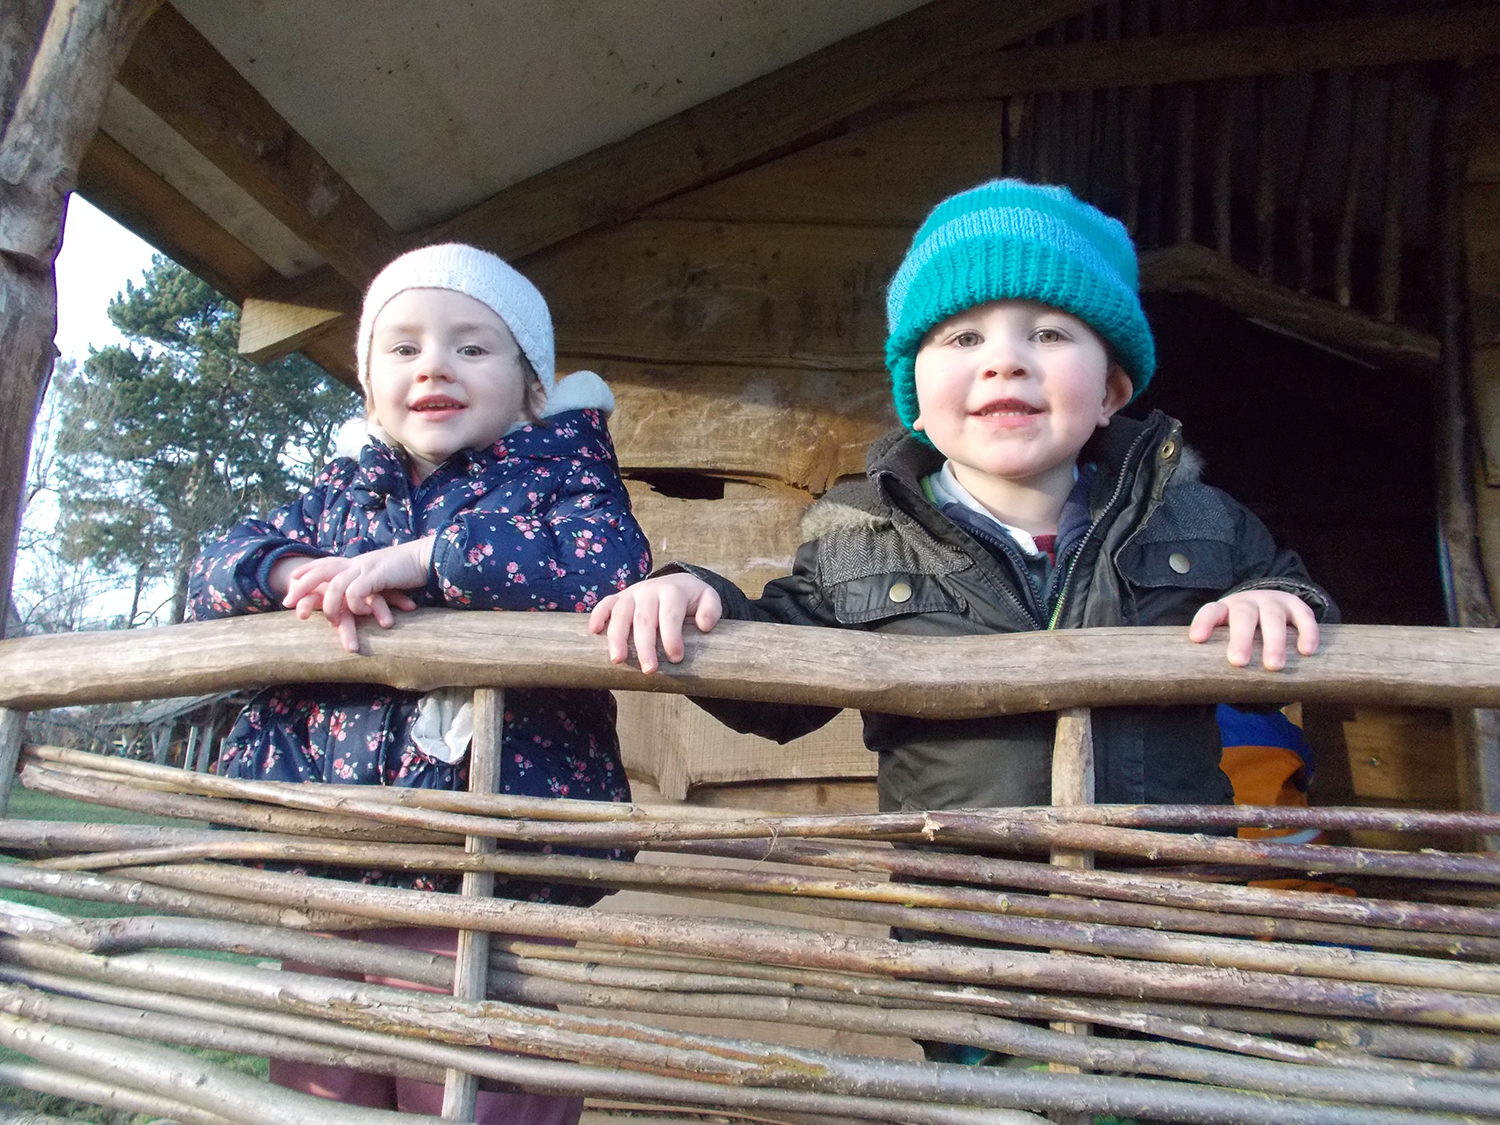 Burrow children in the tree house